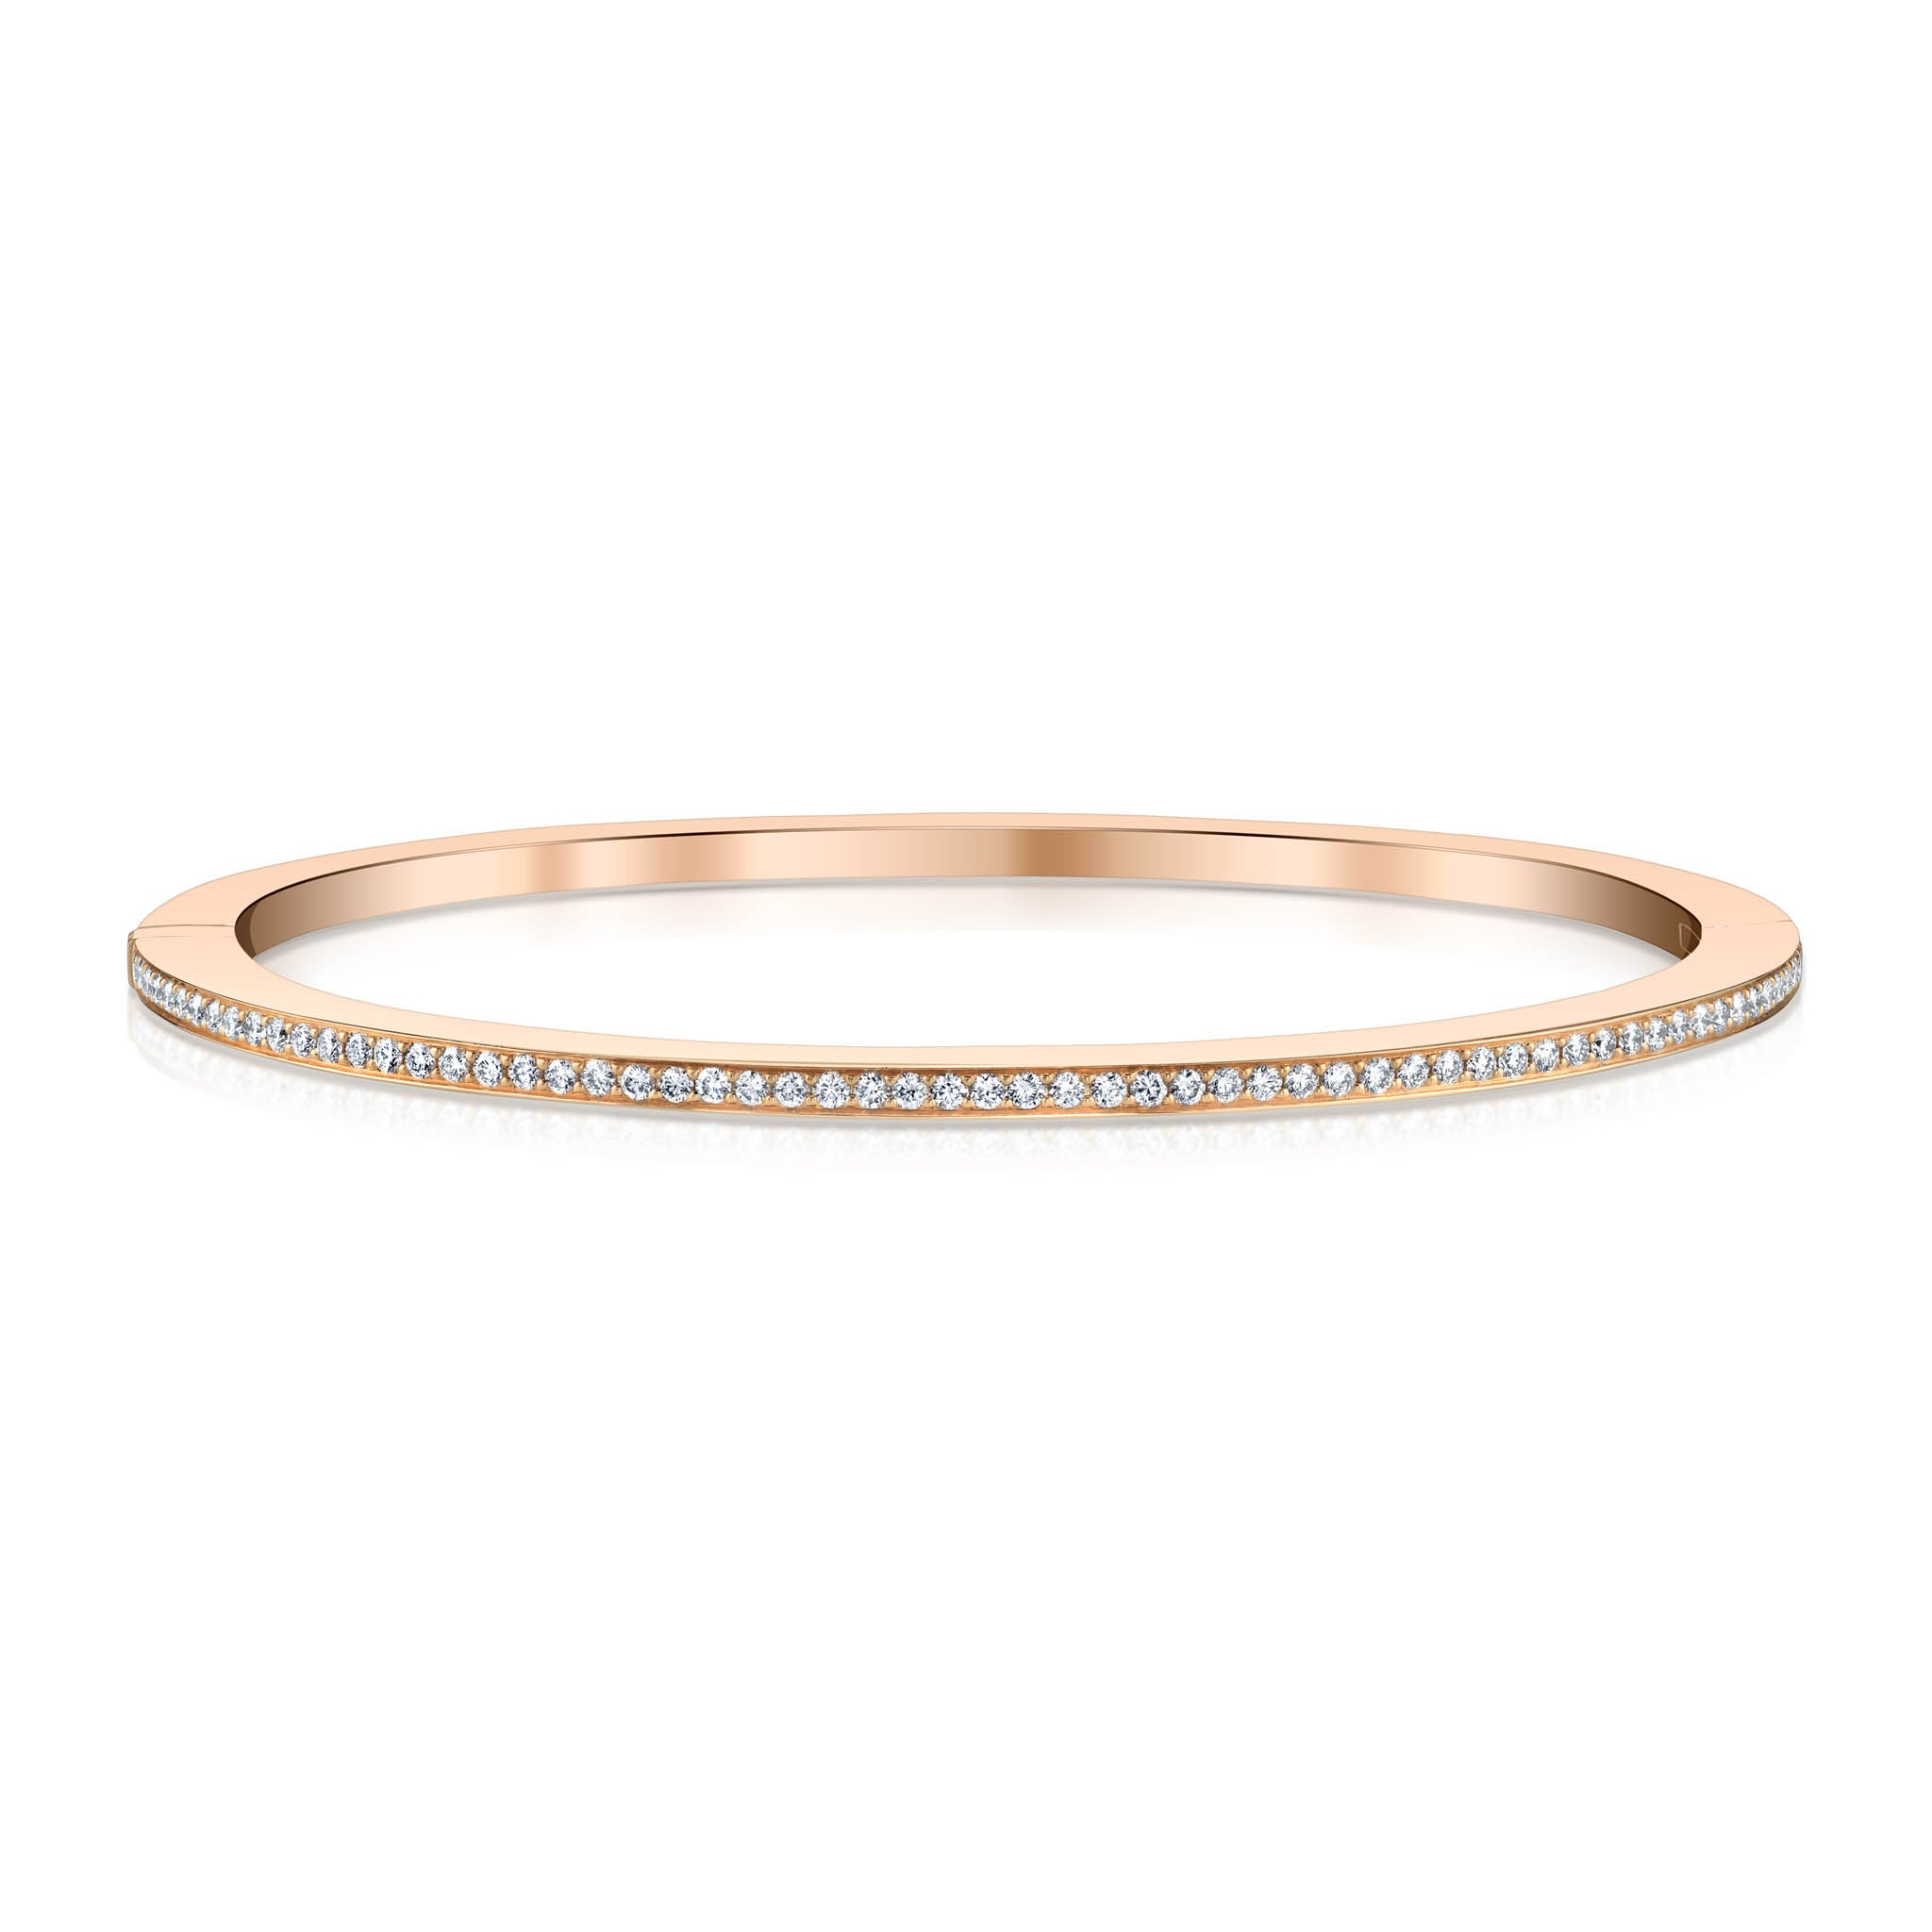 Rose Gold and Diamond Hinged Bangle